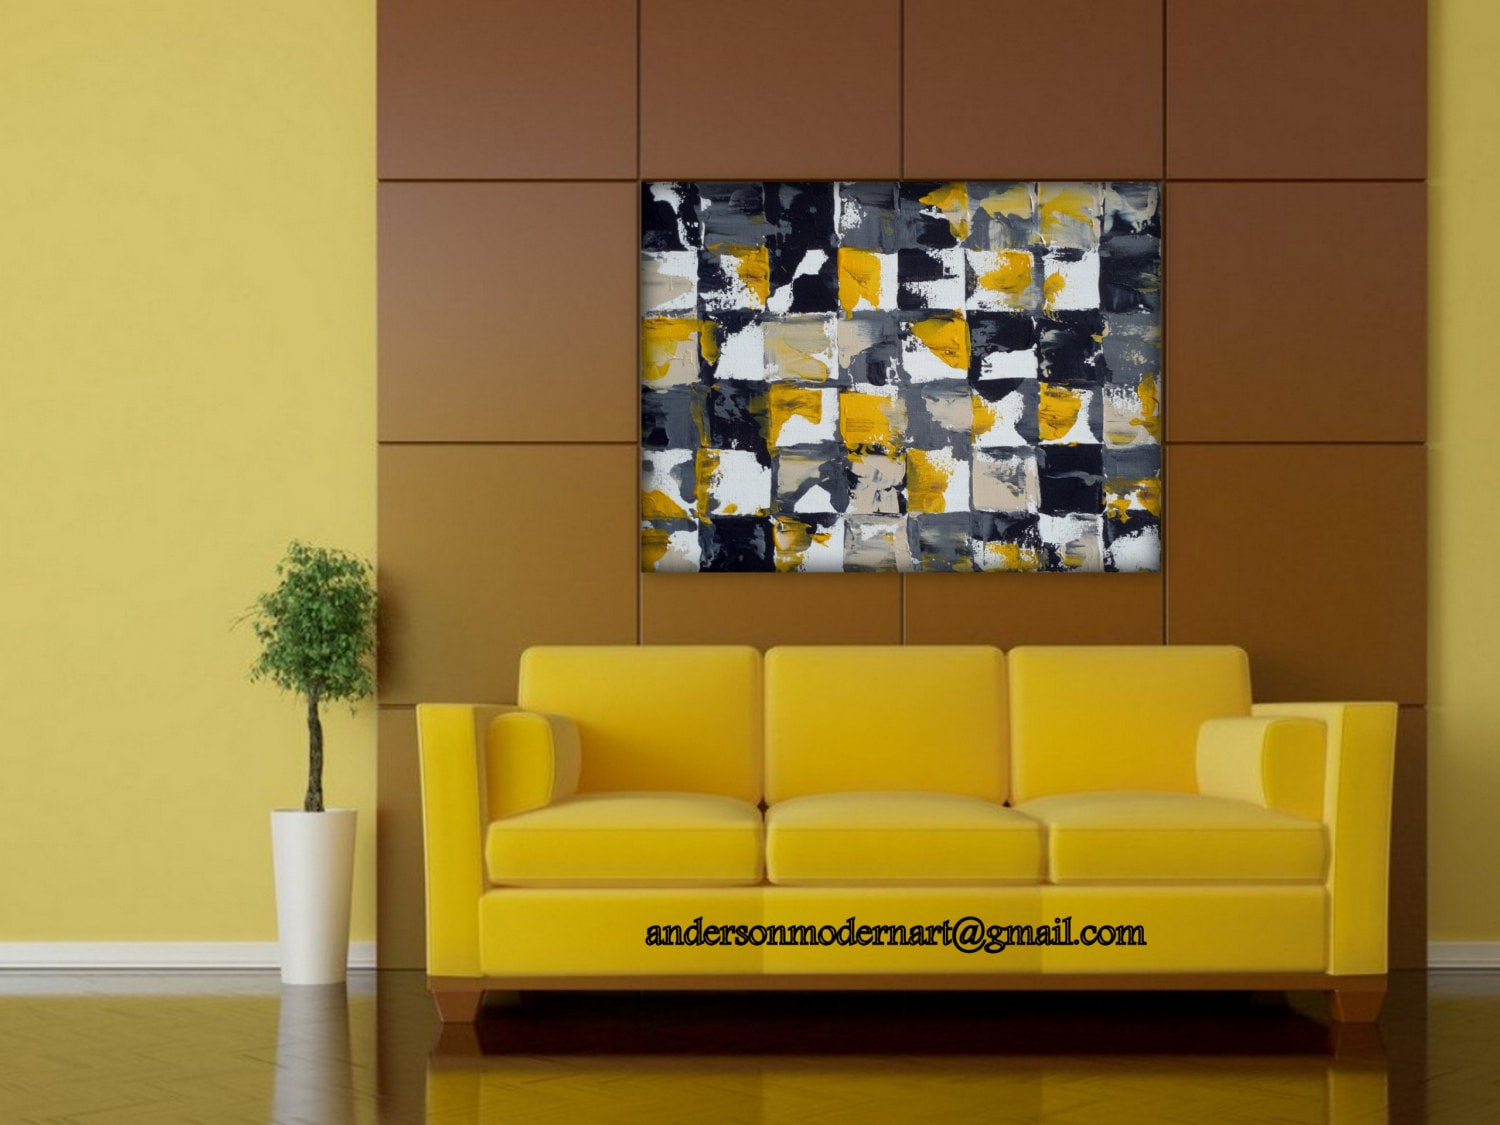 Unusual Abstract Metal Wall Art Pictures Inspiration - The Wall Art ...